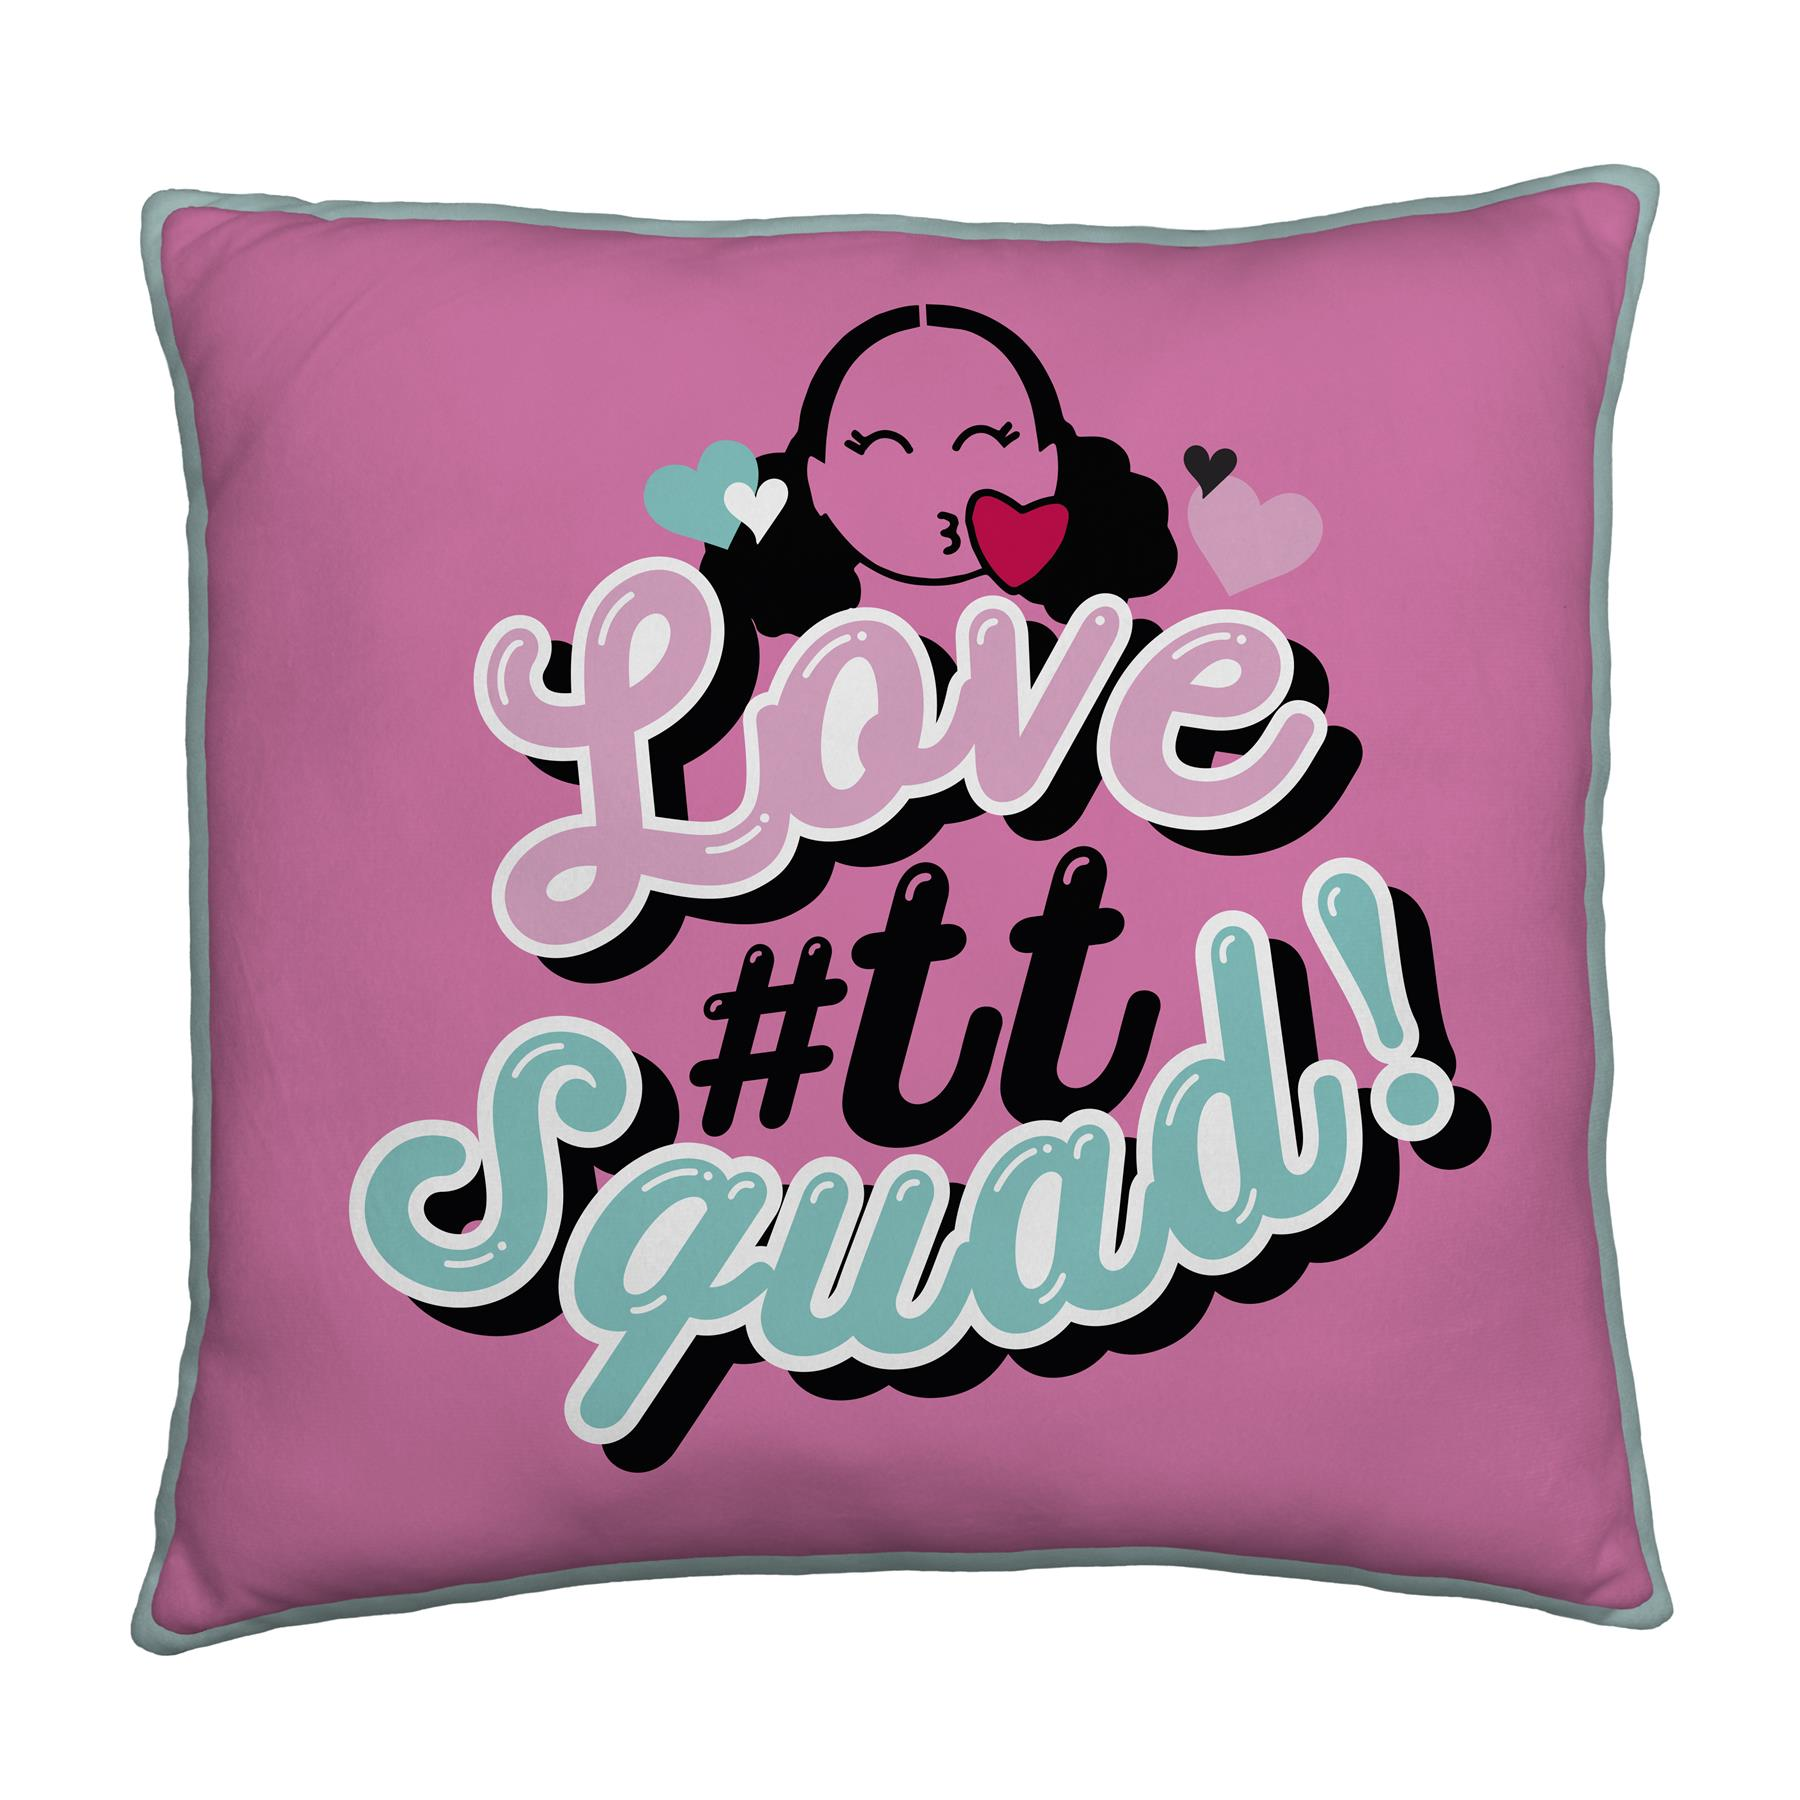 Hearts-by-Tiana-Bedding-Single-Duvet-Cushion-Fleece-Blanket-TTSquad thumbnail 3